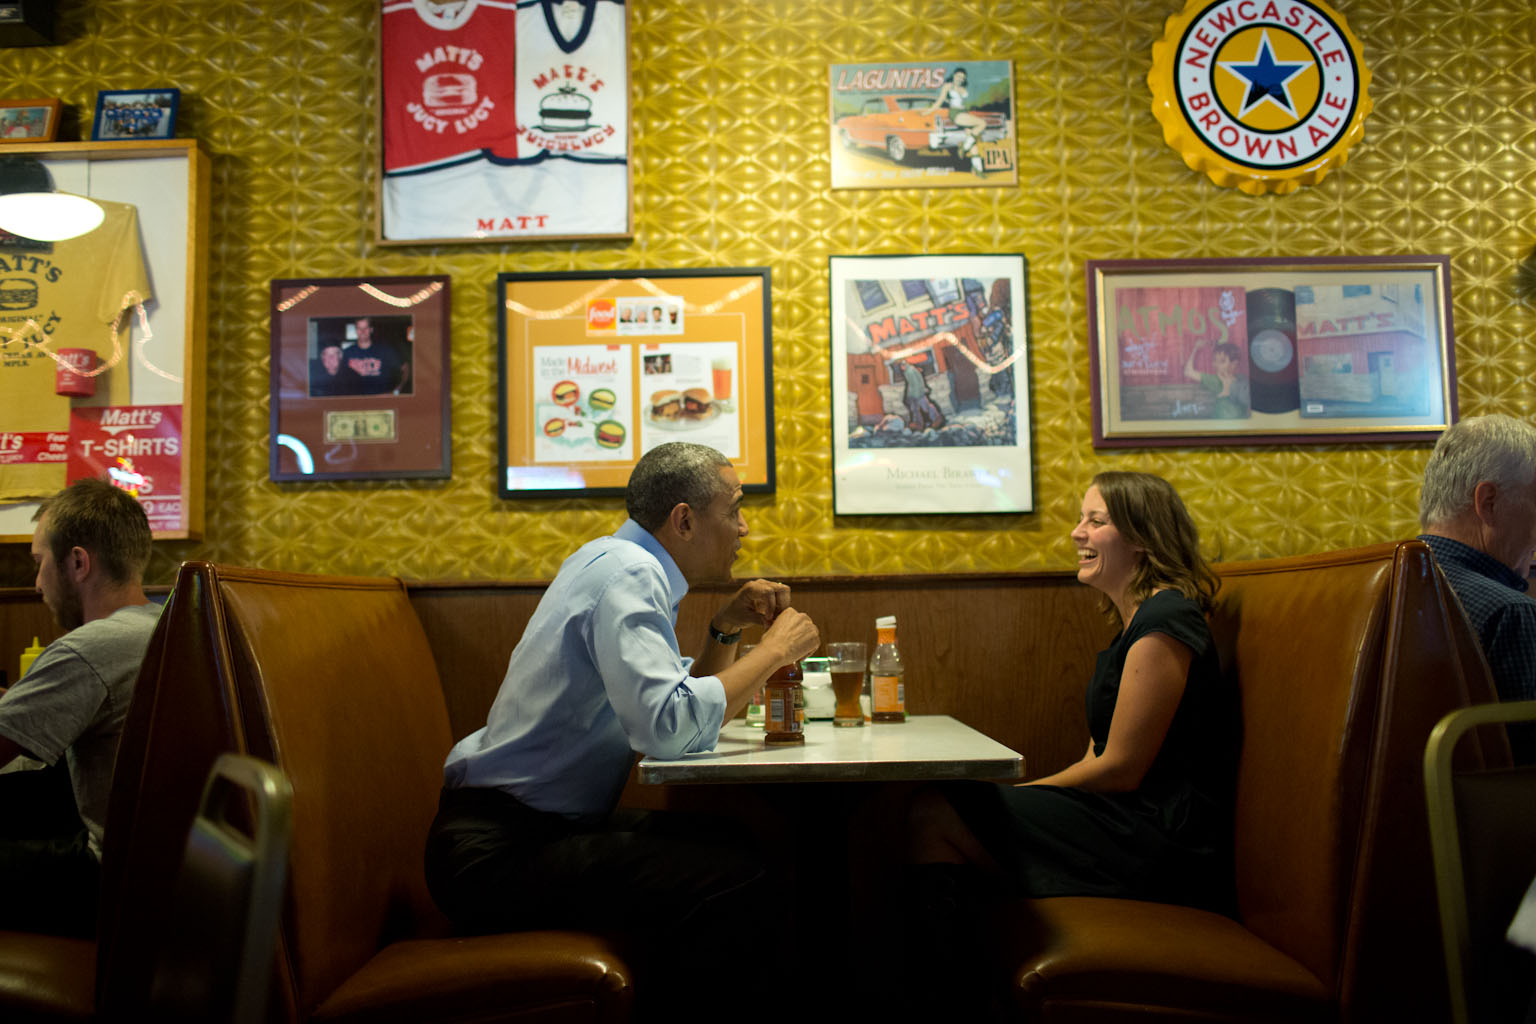 President Barack Obama has lunch with Rebekah Erler at Matt's Bar in Minneapolis, Minn., June 26, 2014. Erler is a 36-year-old working wife and mother of two pre-school aged boys who had written the President a letter about economic difficulties.